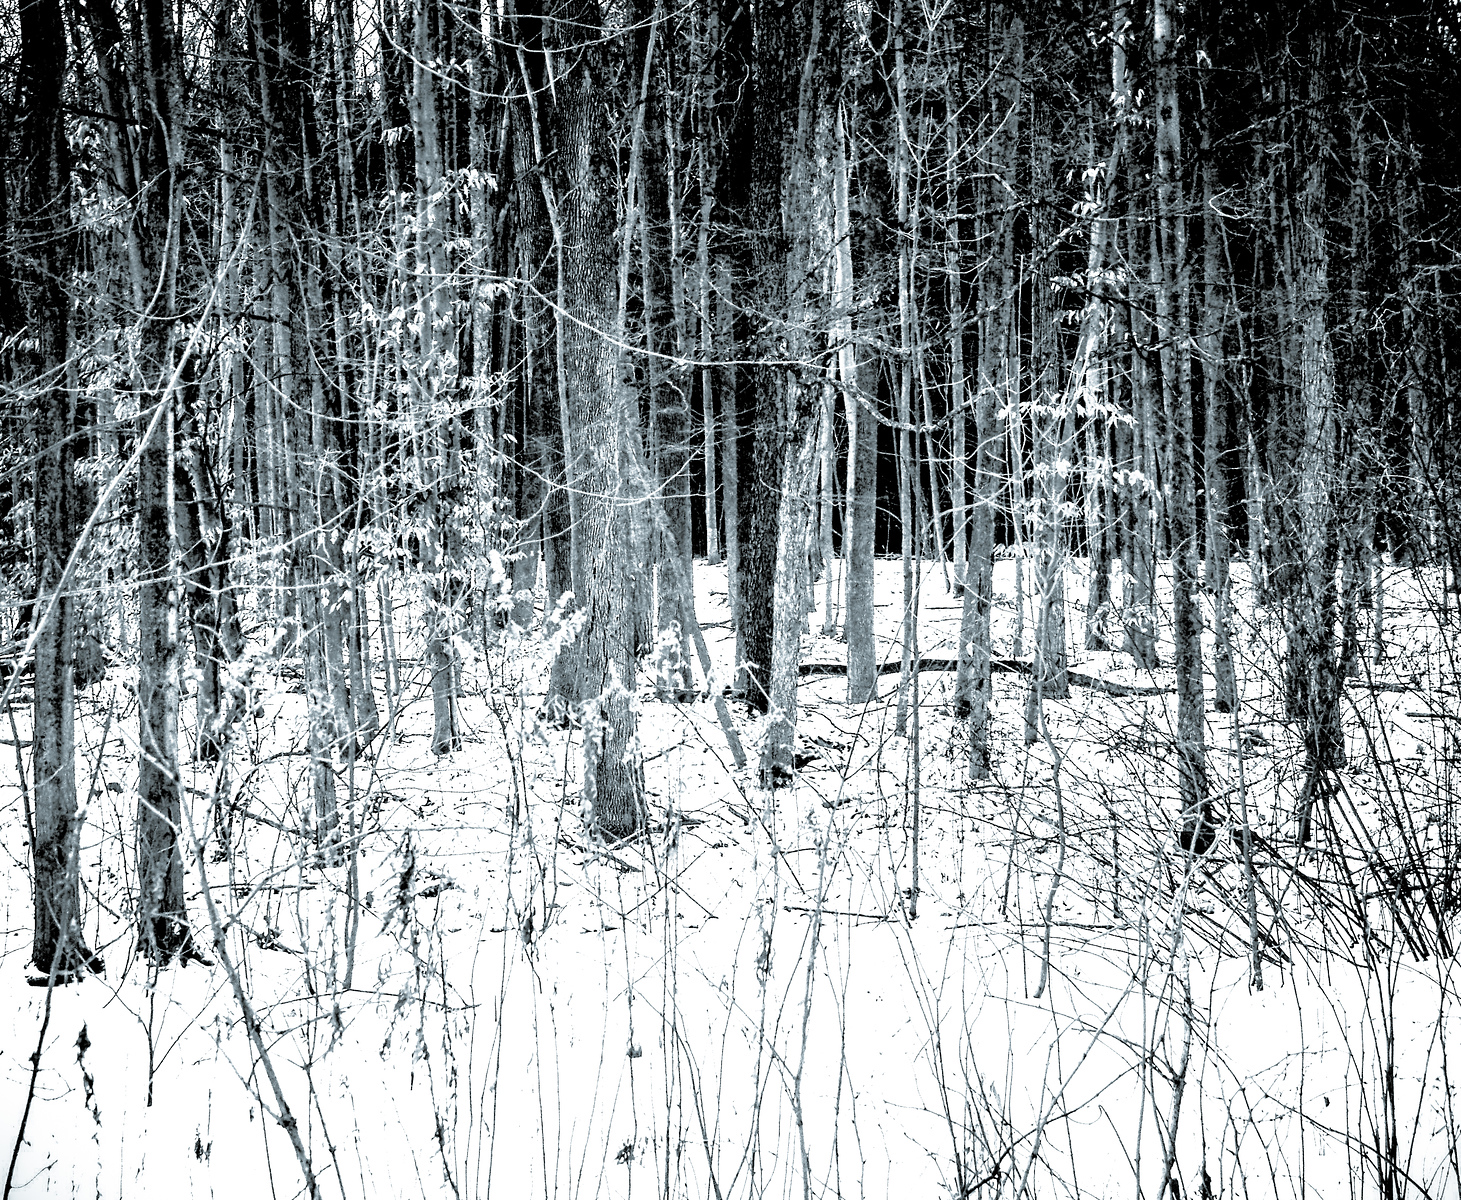 Winter woods in black and white